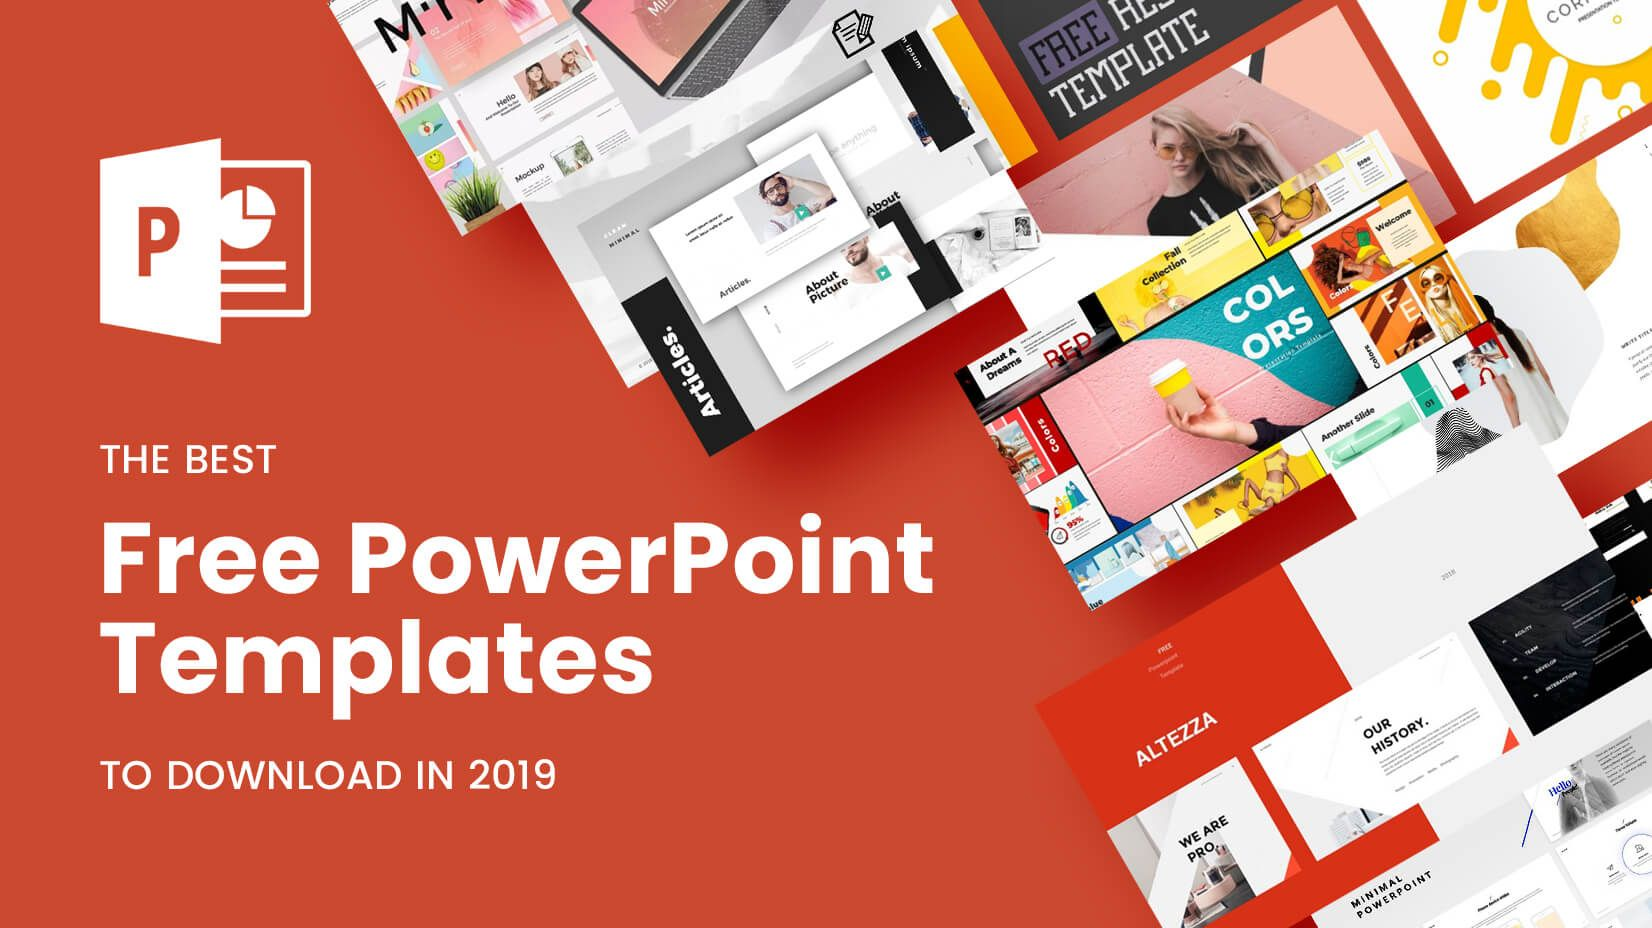 The Extraordinary The Best Free Powerpoint Templates To Download In In 2020 Free Powerpoint Templates Download Free Powerpoint Presentations Presentation Template Free